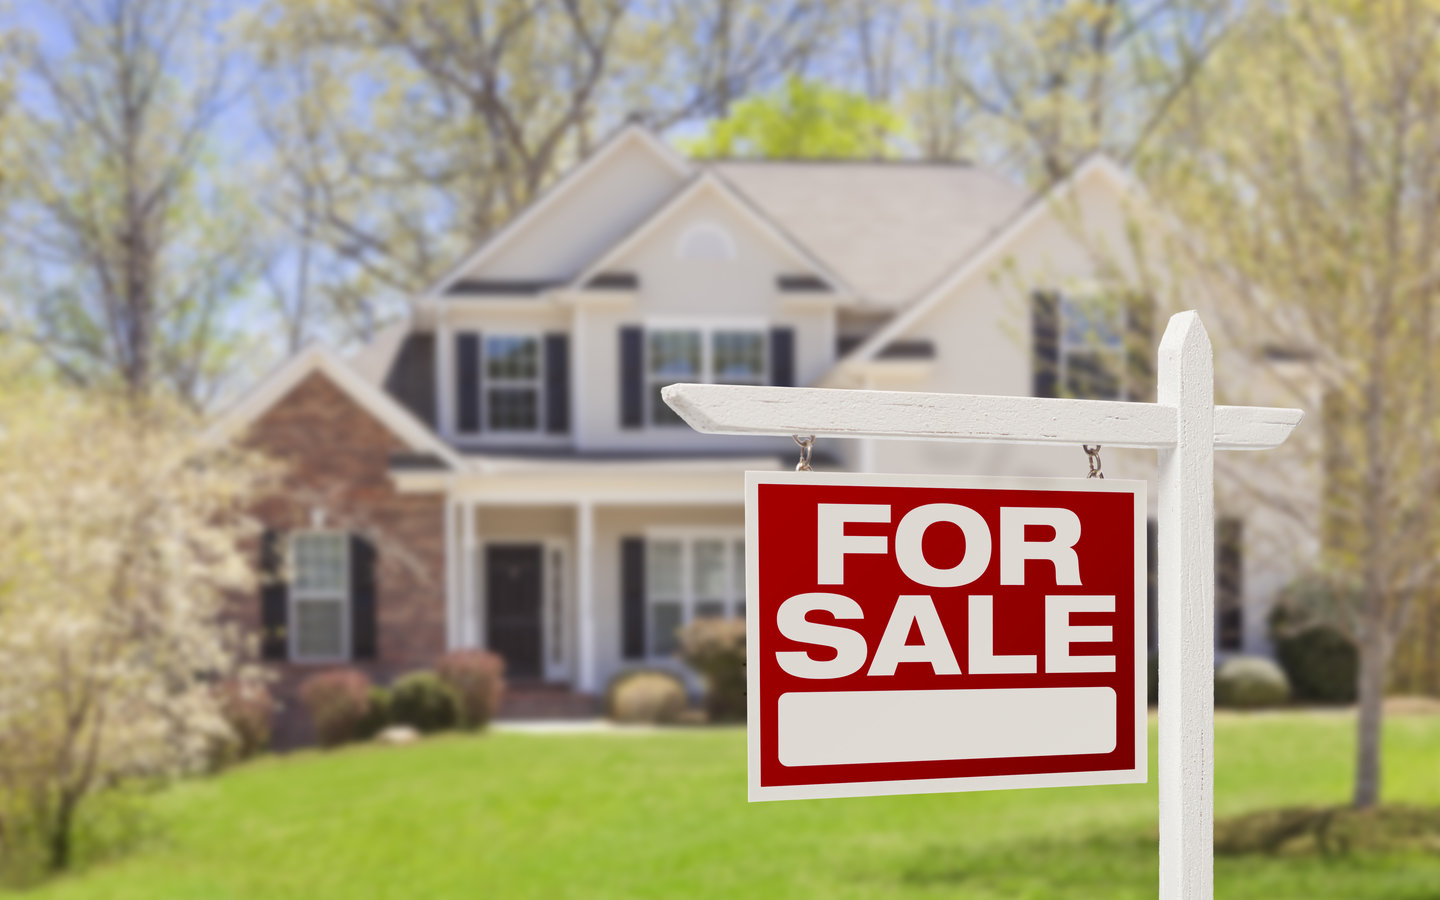 Customer service tips for real estate agents